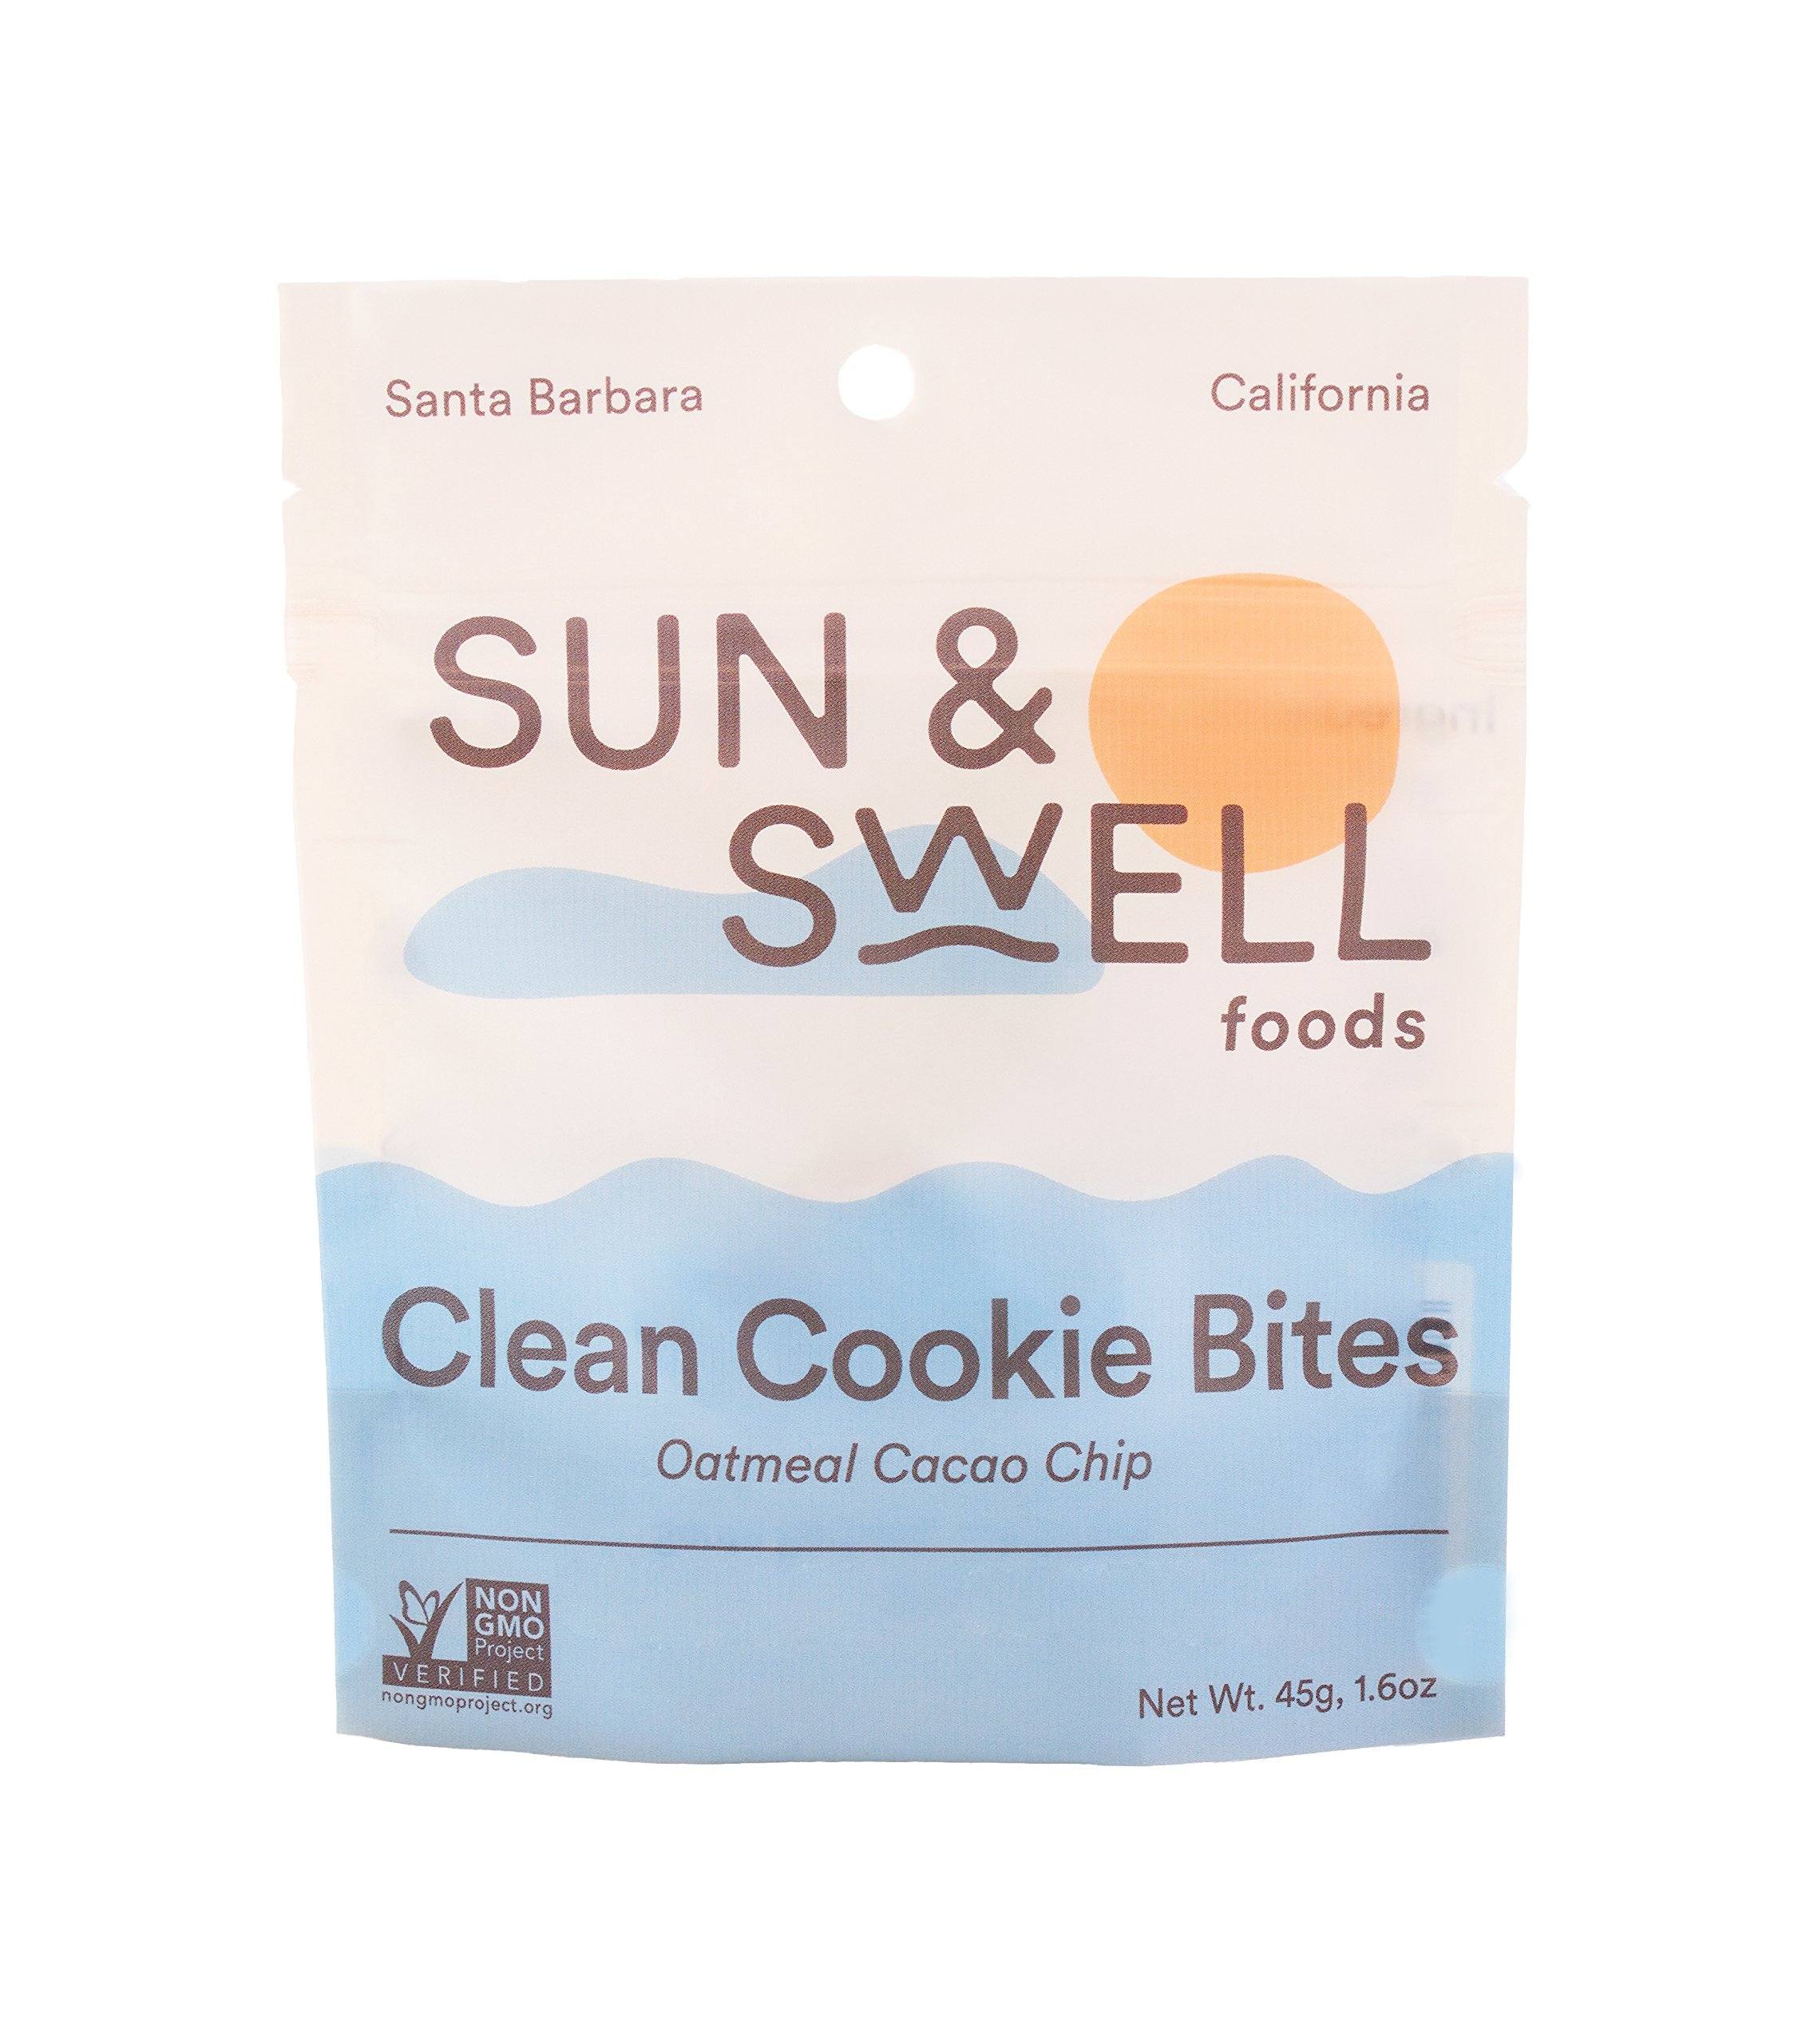 Sun & Swell Foods Clean Cookie Bites (6 Snack Packs): Oatmeal Cacao Chip; Healthy Snacks - Organic, Vegan, Gluten Free, and made with Whole Food Ingredients